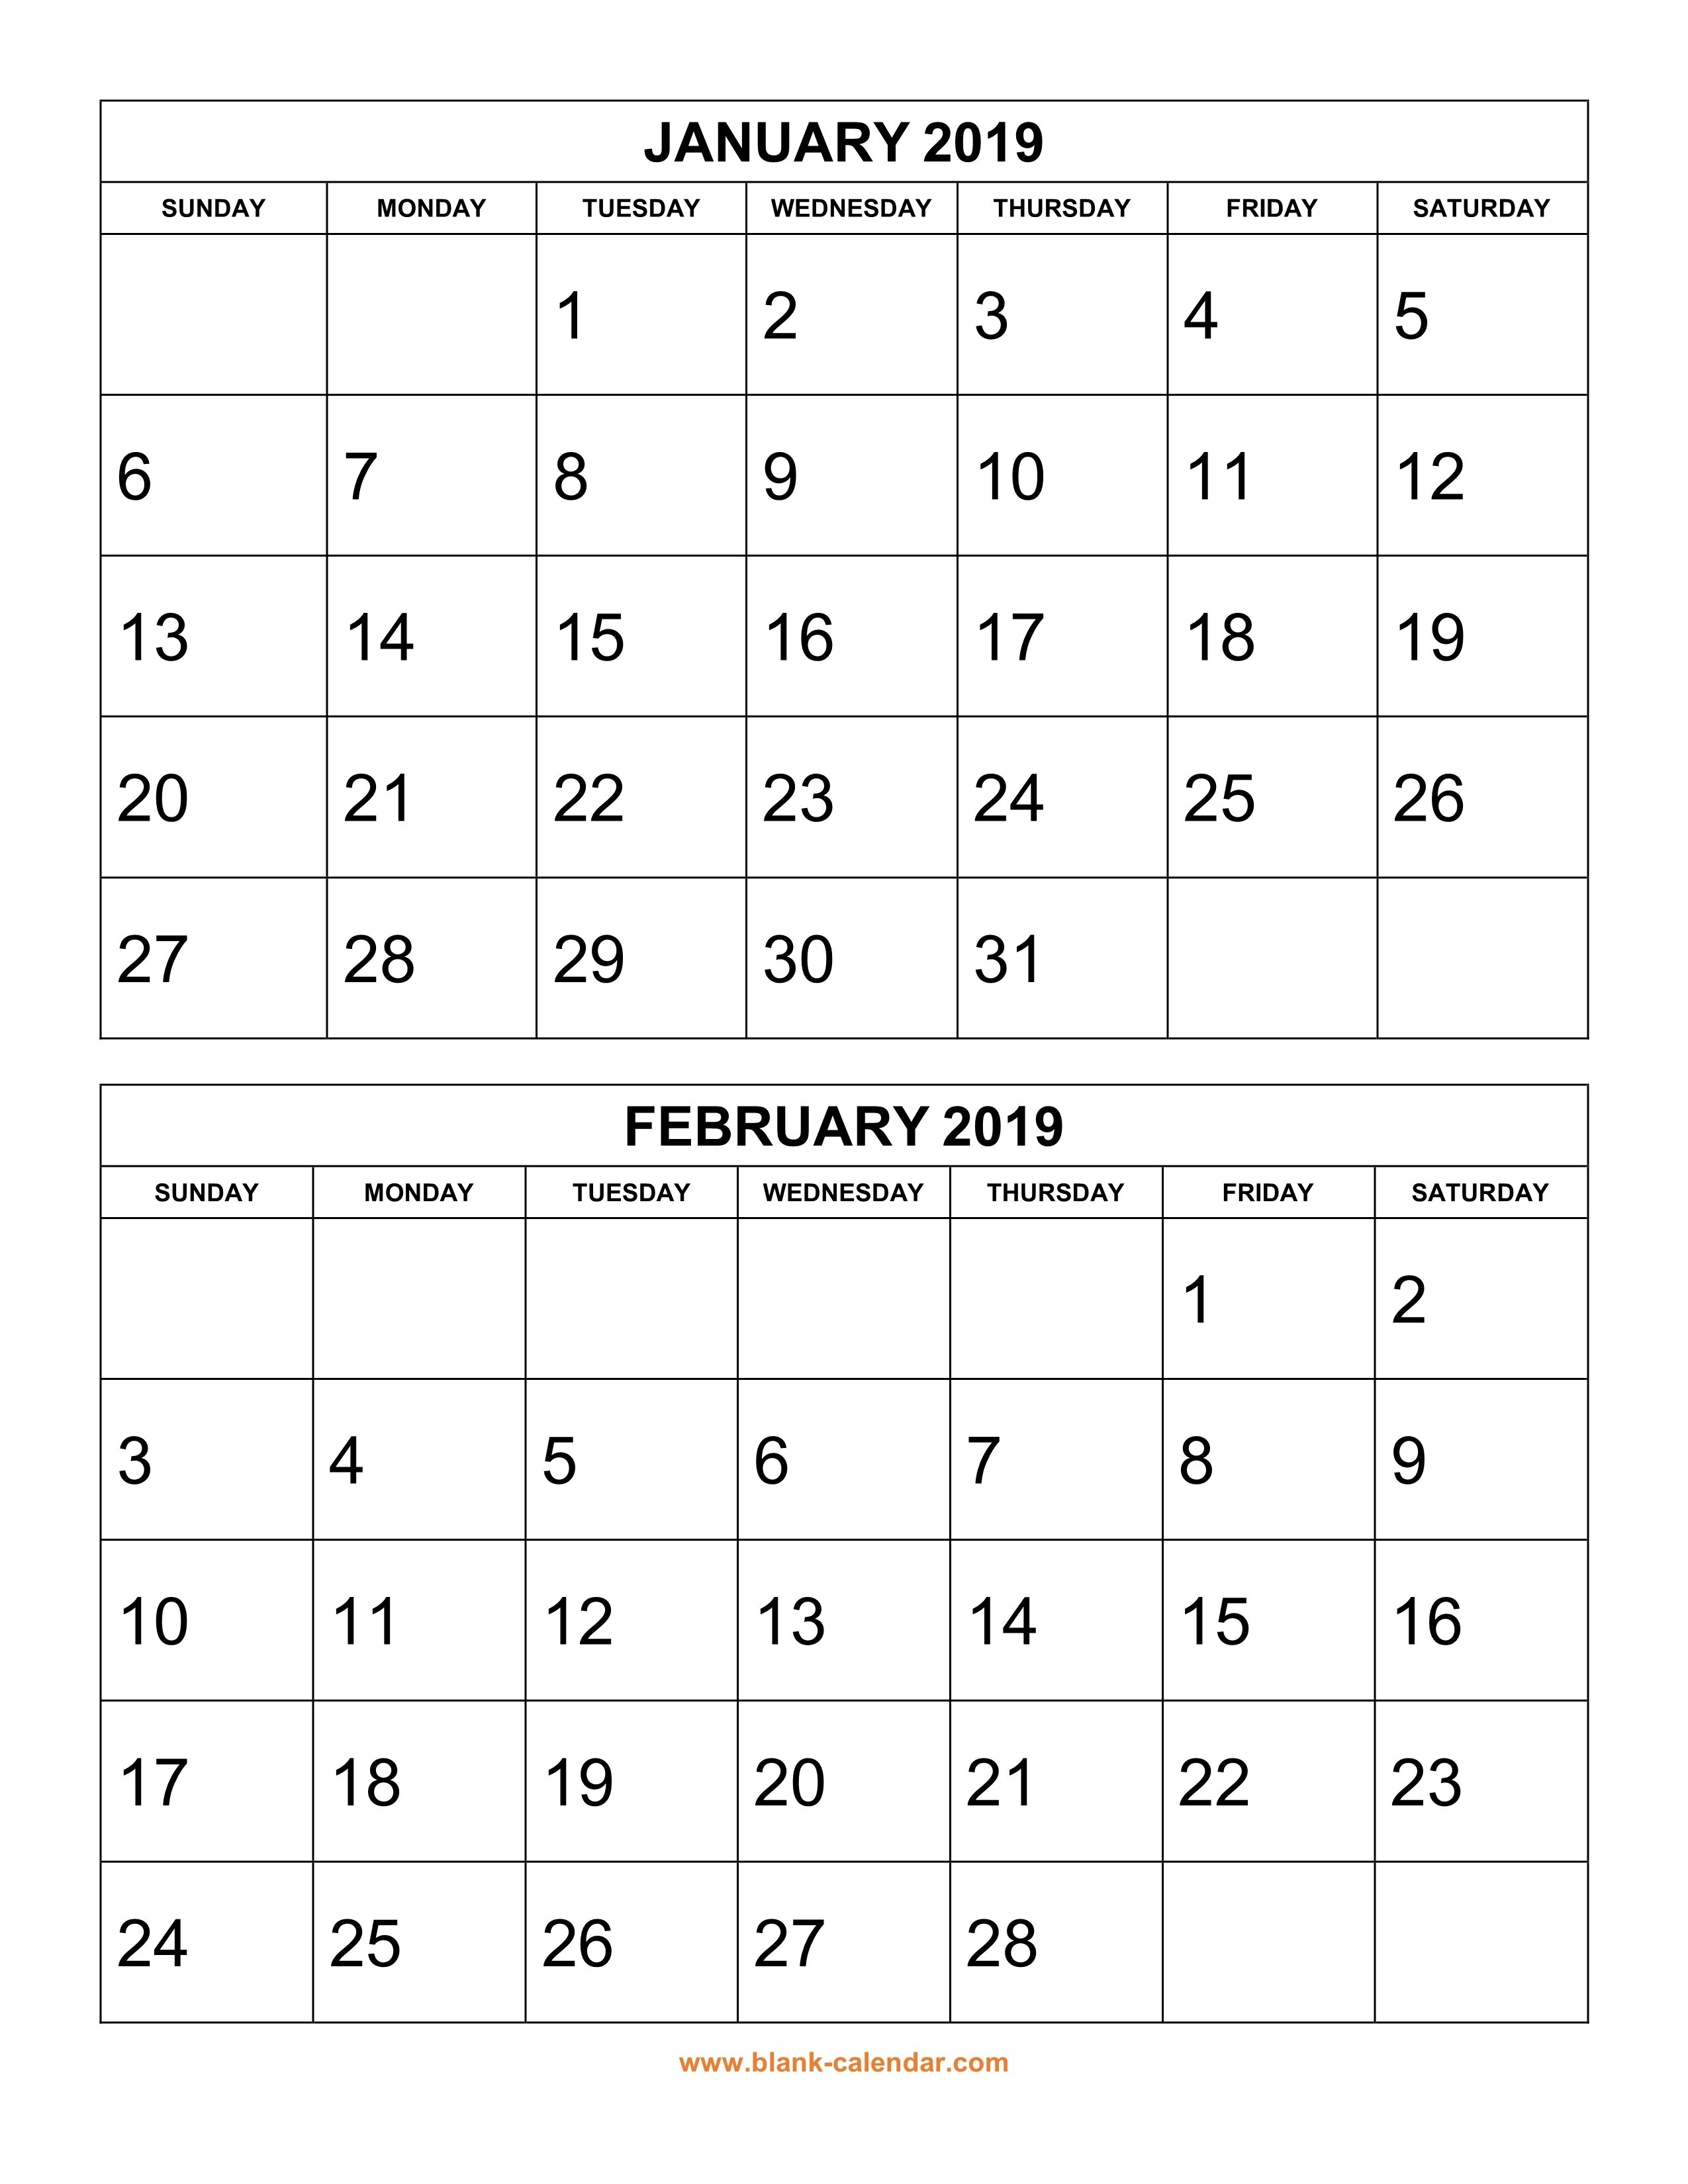 Free Download Printable Calendar 2019, 2 Months Per Page, 6 Pages 6 Month Calendar Template 2019